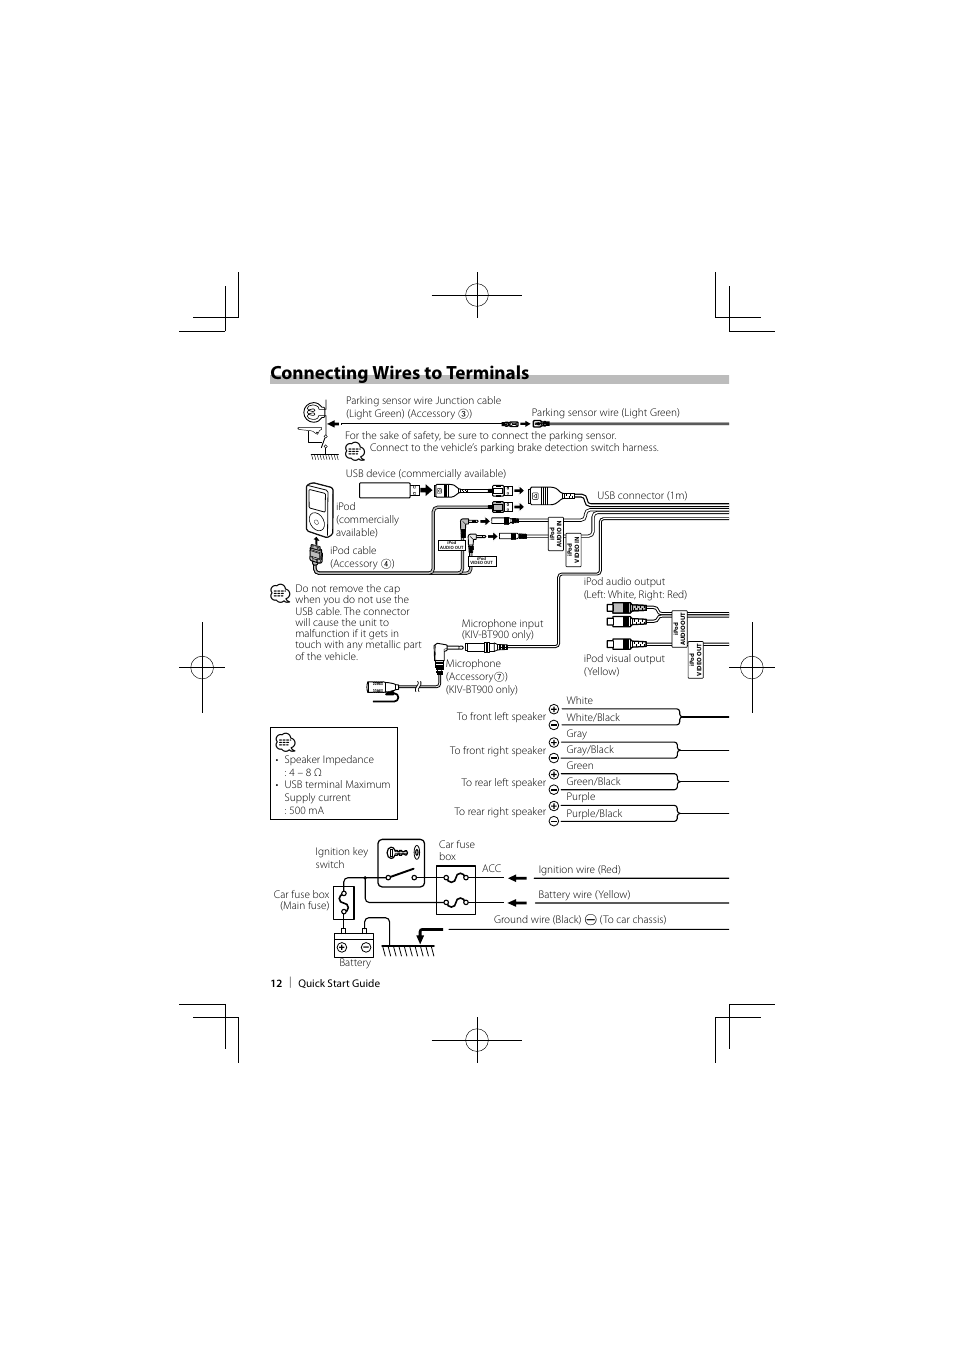 Connecting wires to terminals | Kenwood KIV-BT900 User Manual | Page 12 / 48Manuals Directory